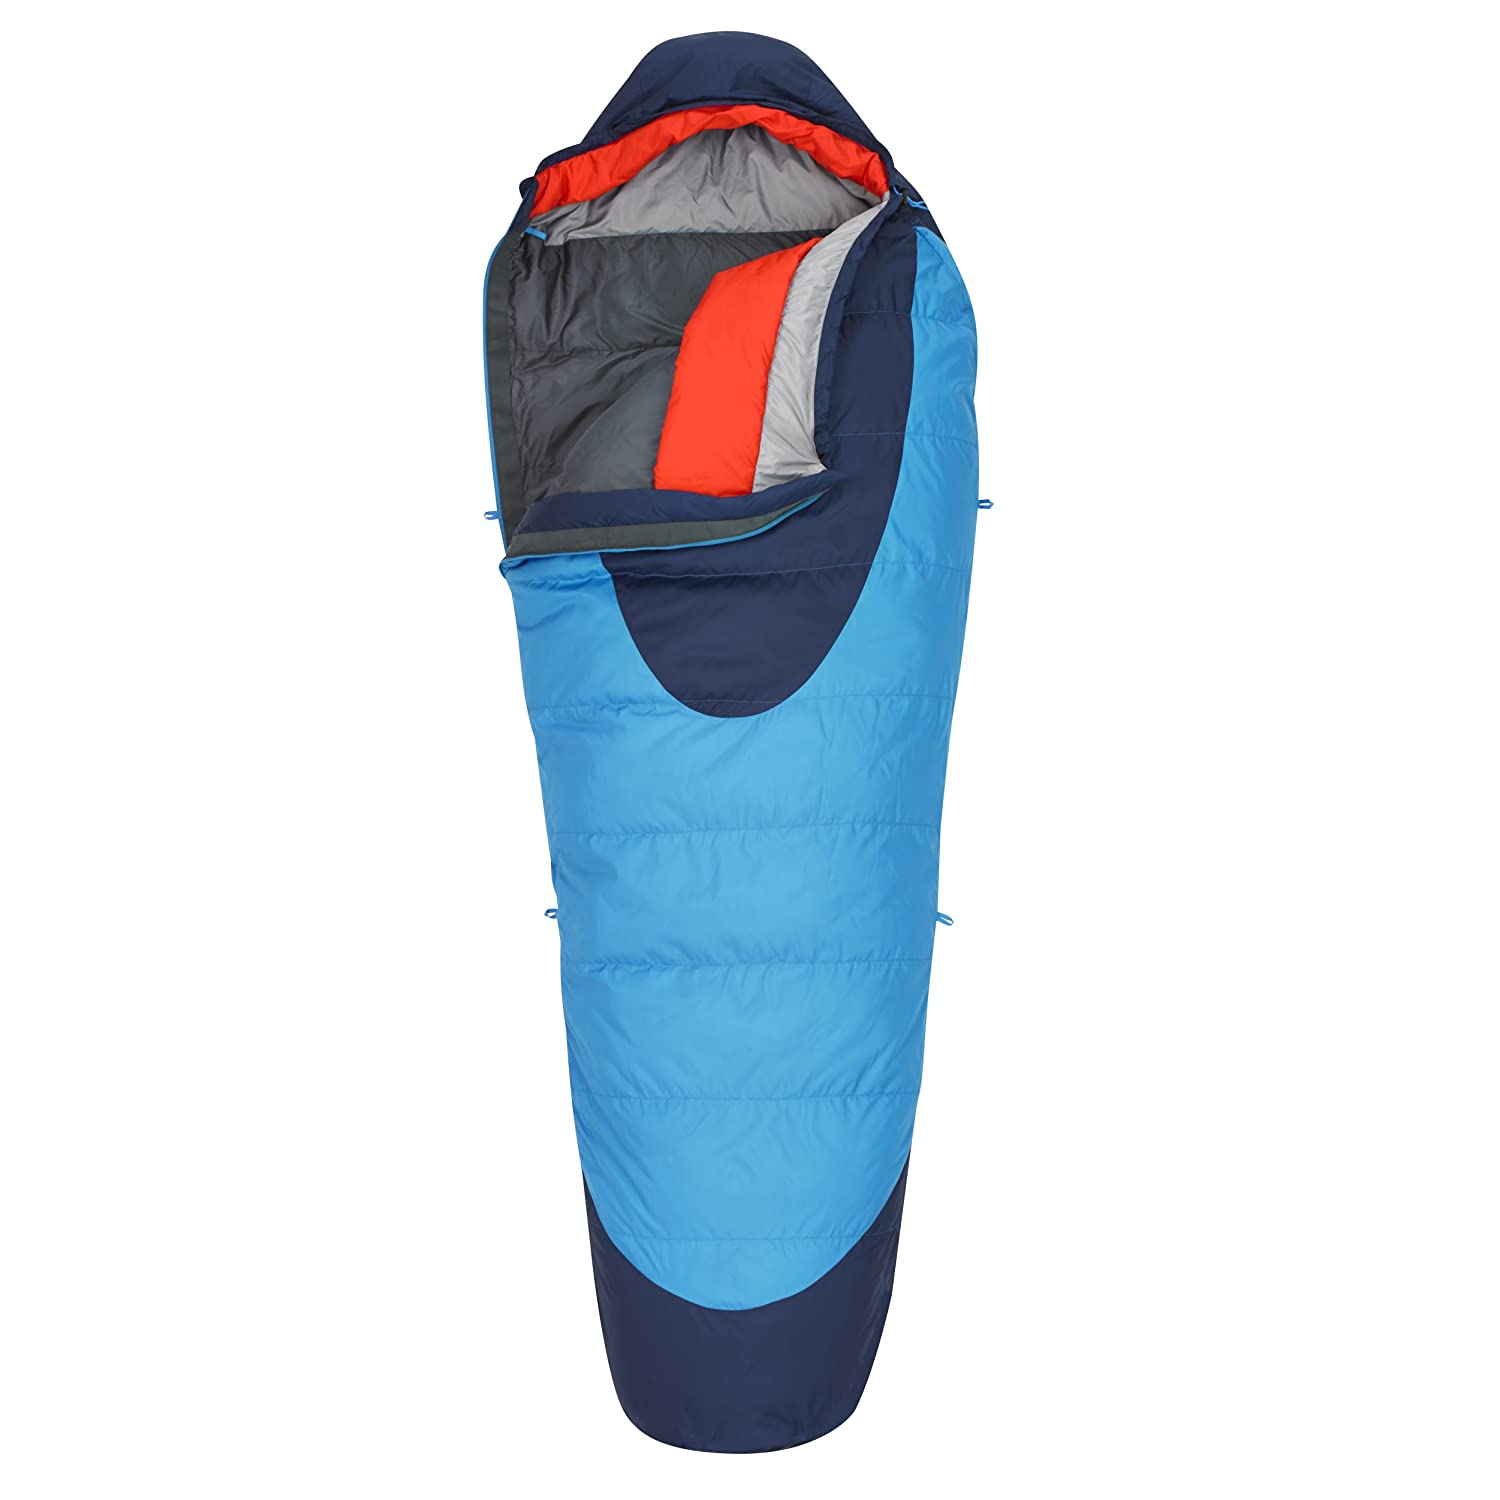 2 Person Sleeping Bags